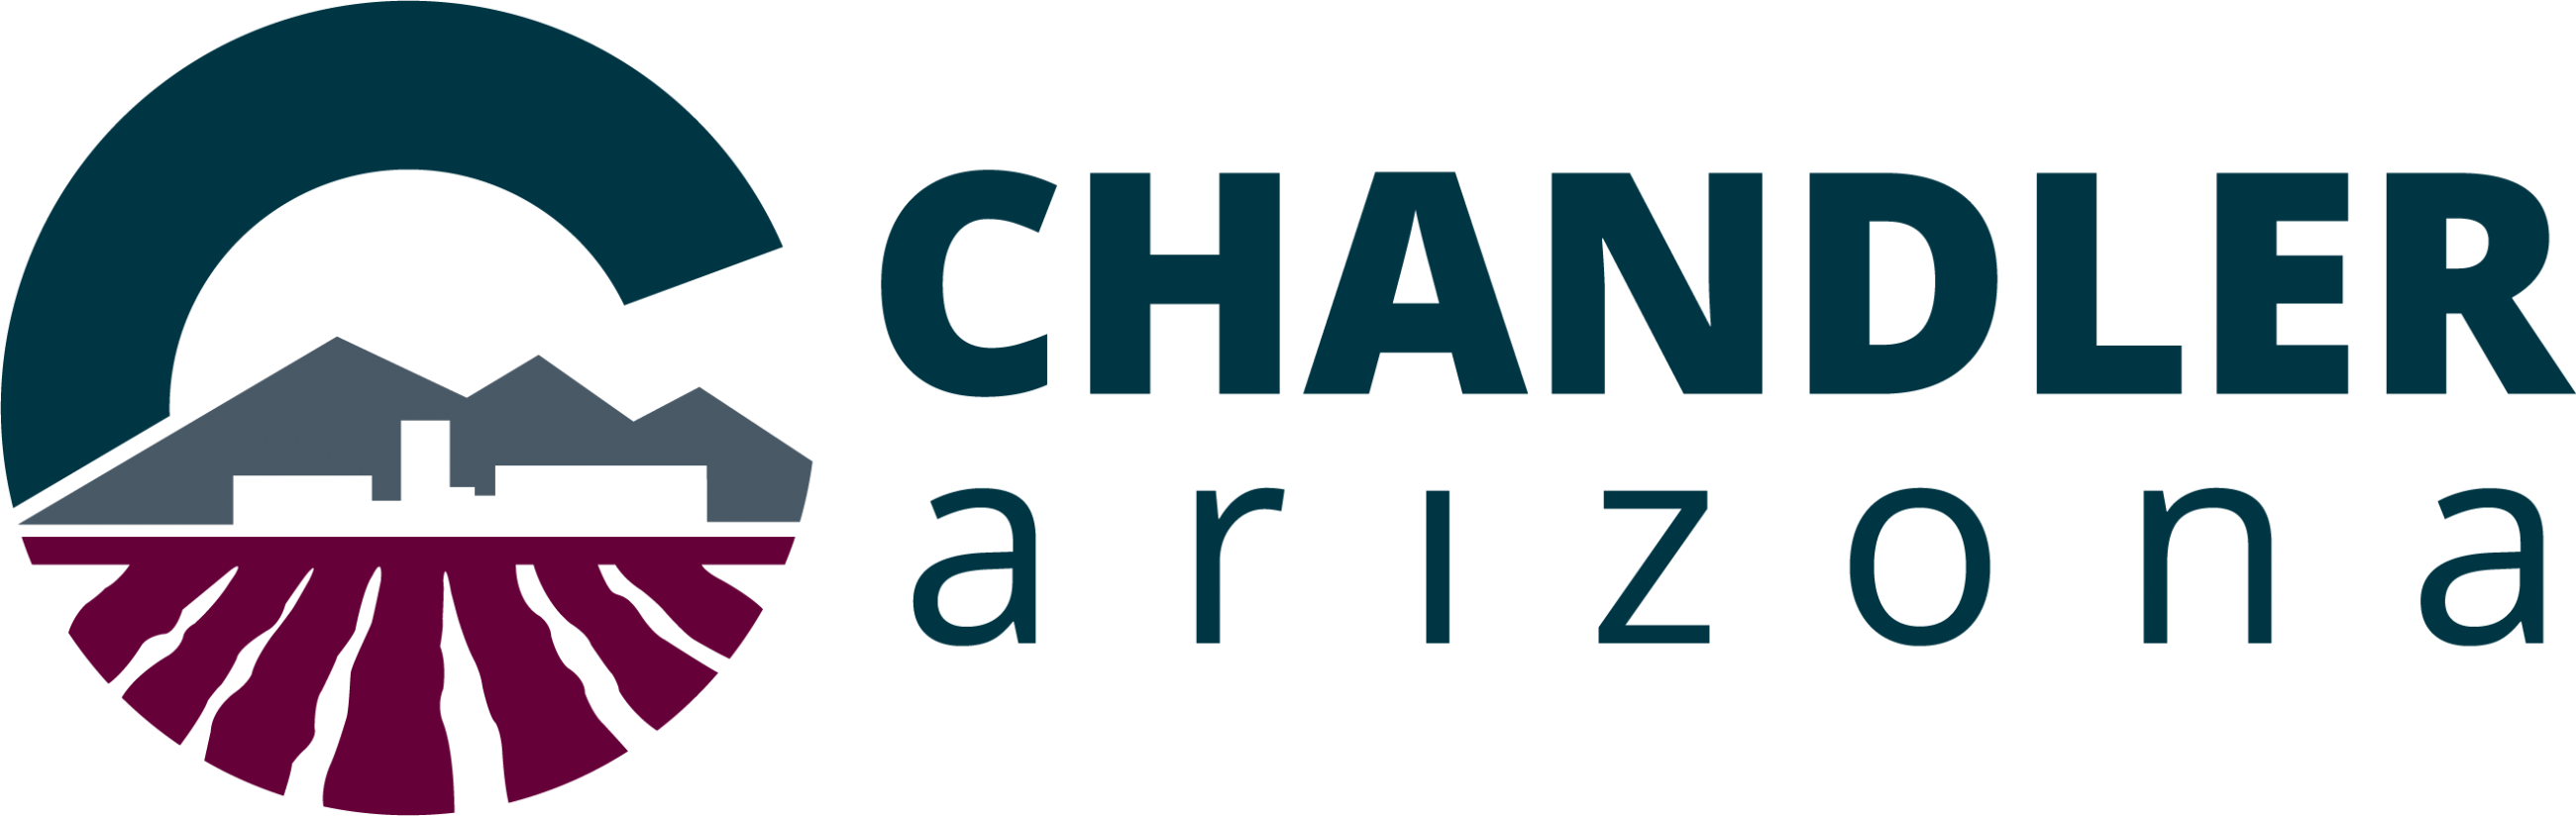 City of Chandler Logo